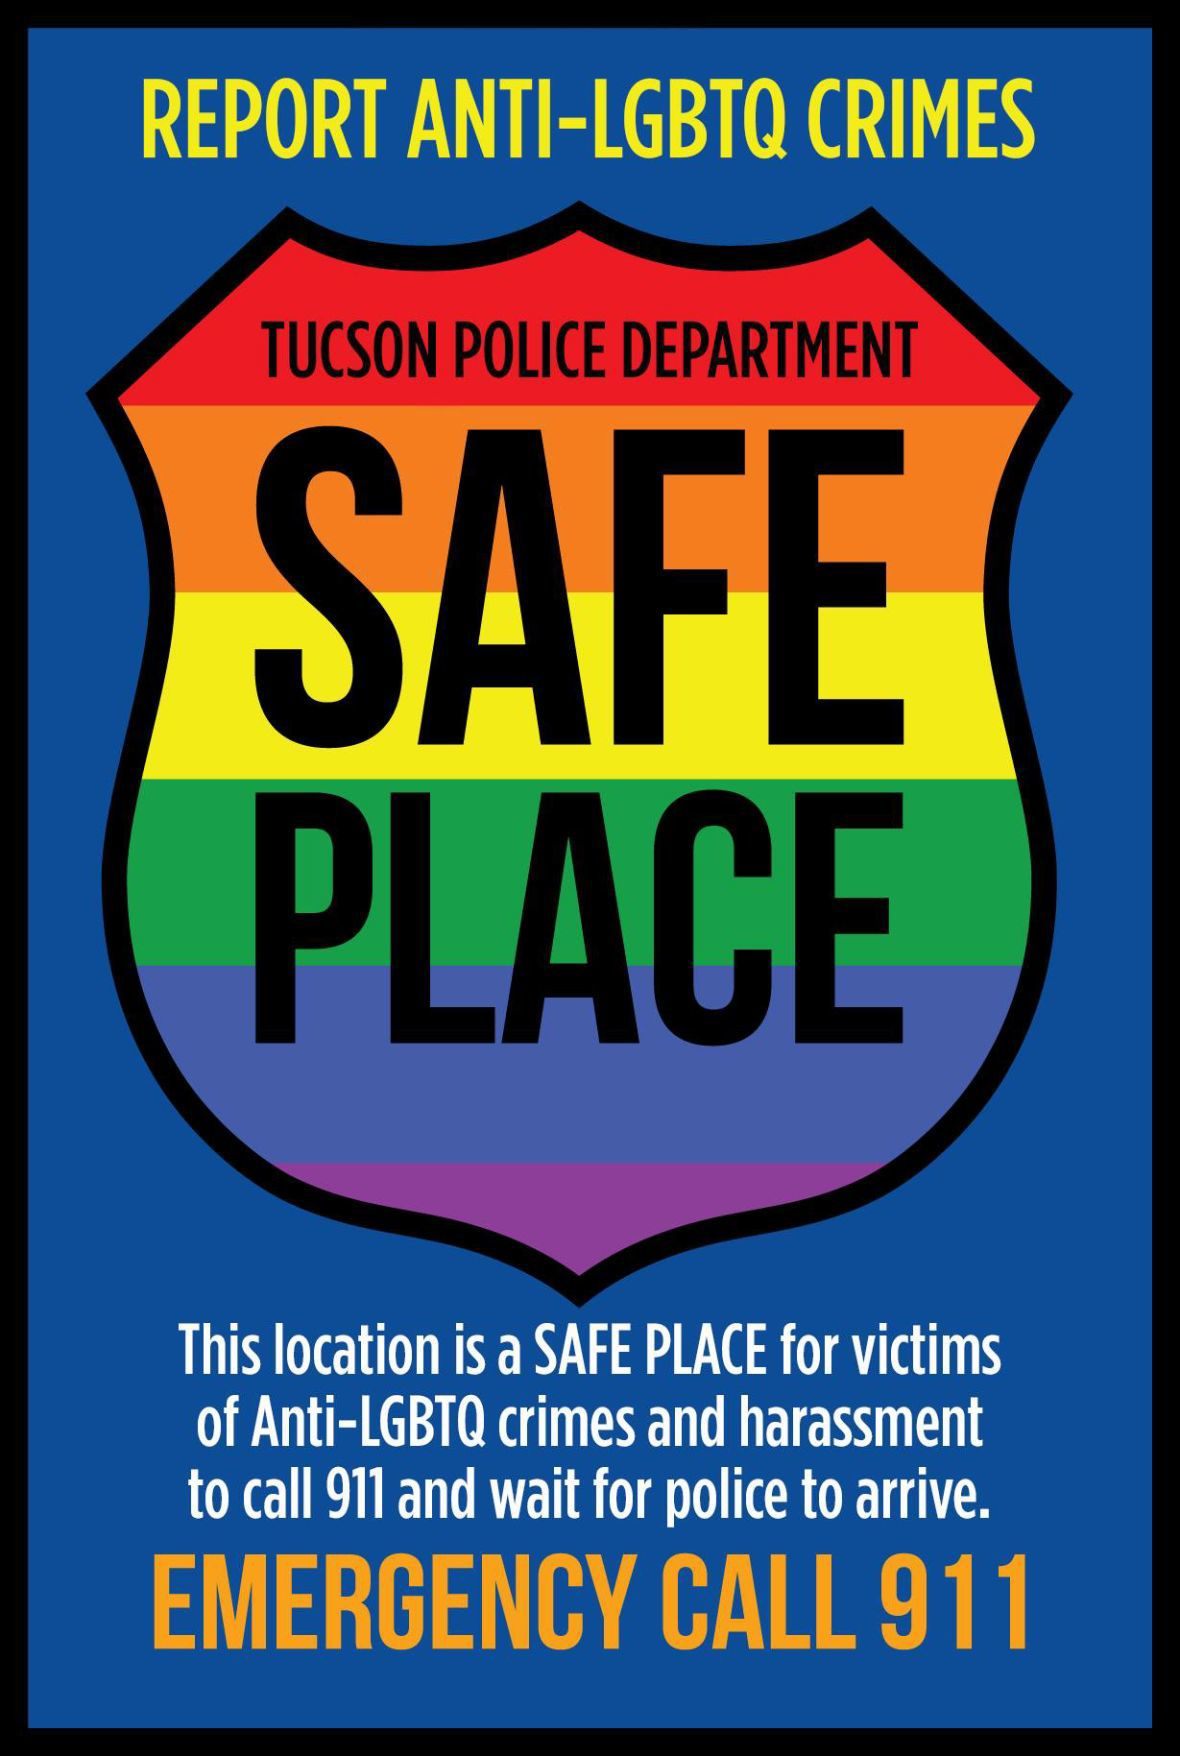 Program to aid victims of hate crimes to be revived by Tucson